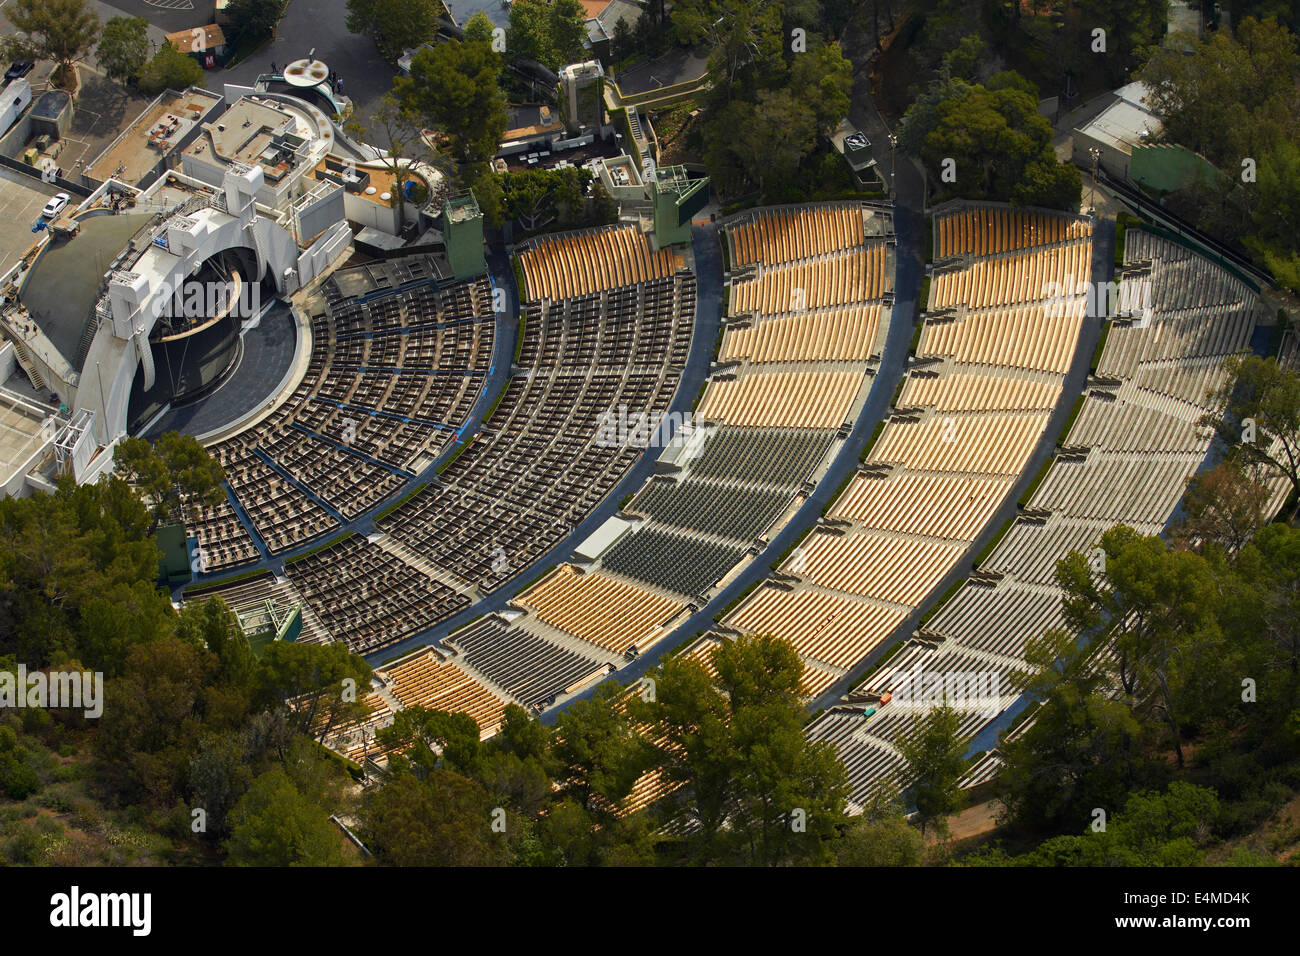 Hollywood Bowl, Hollywood, Los Angeles, Kalifornien, USA - Antenne Stockbild